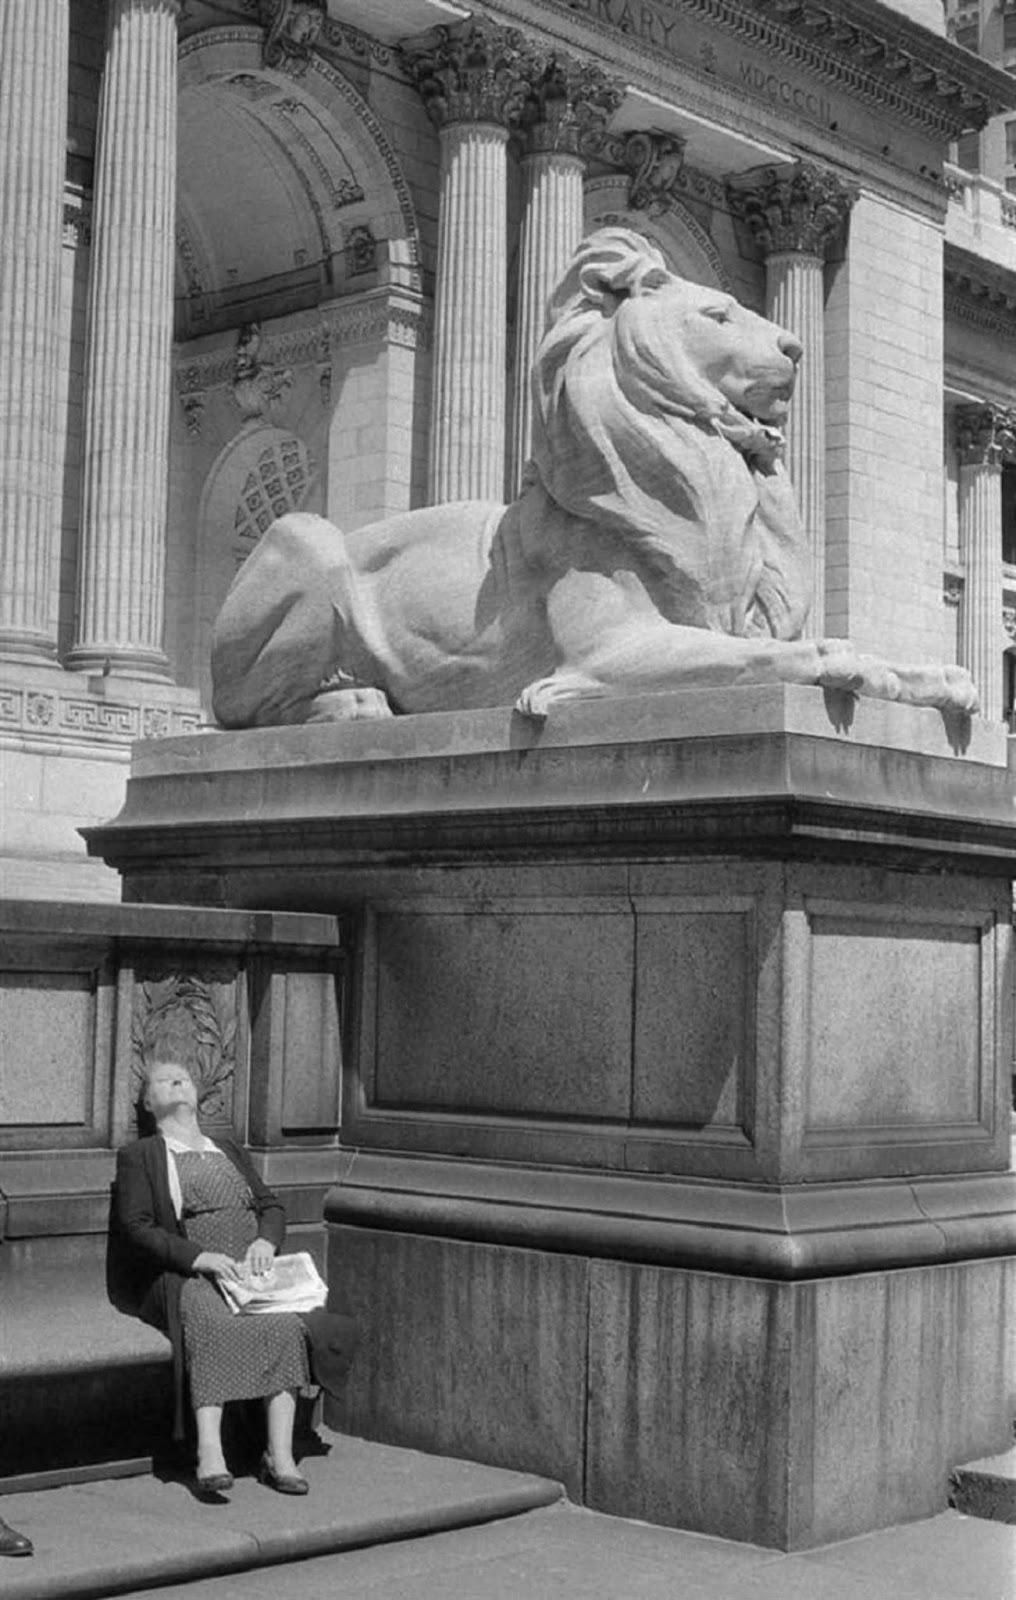 A woman suns herself outside the entrance of the main Public Library building in 1955.